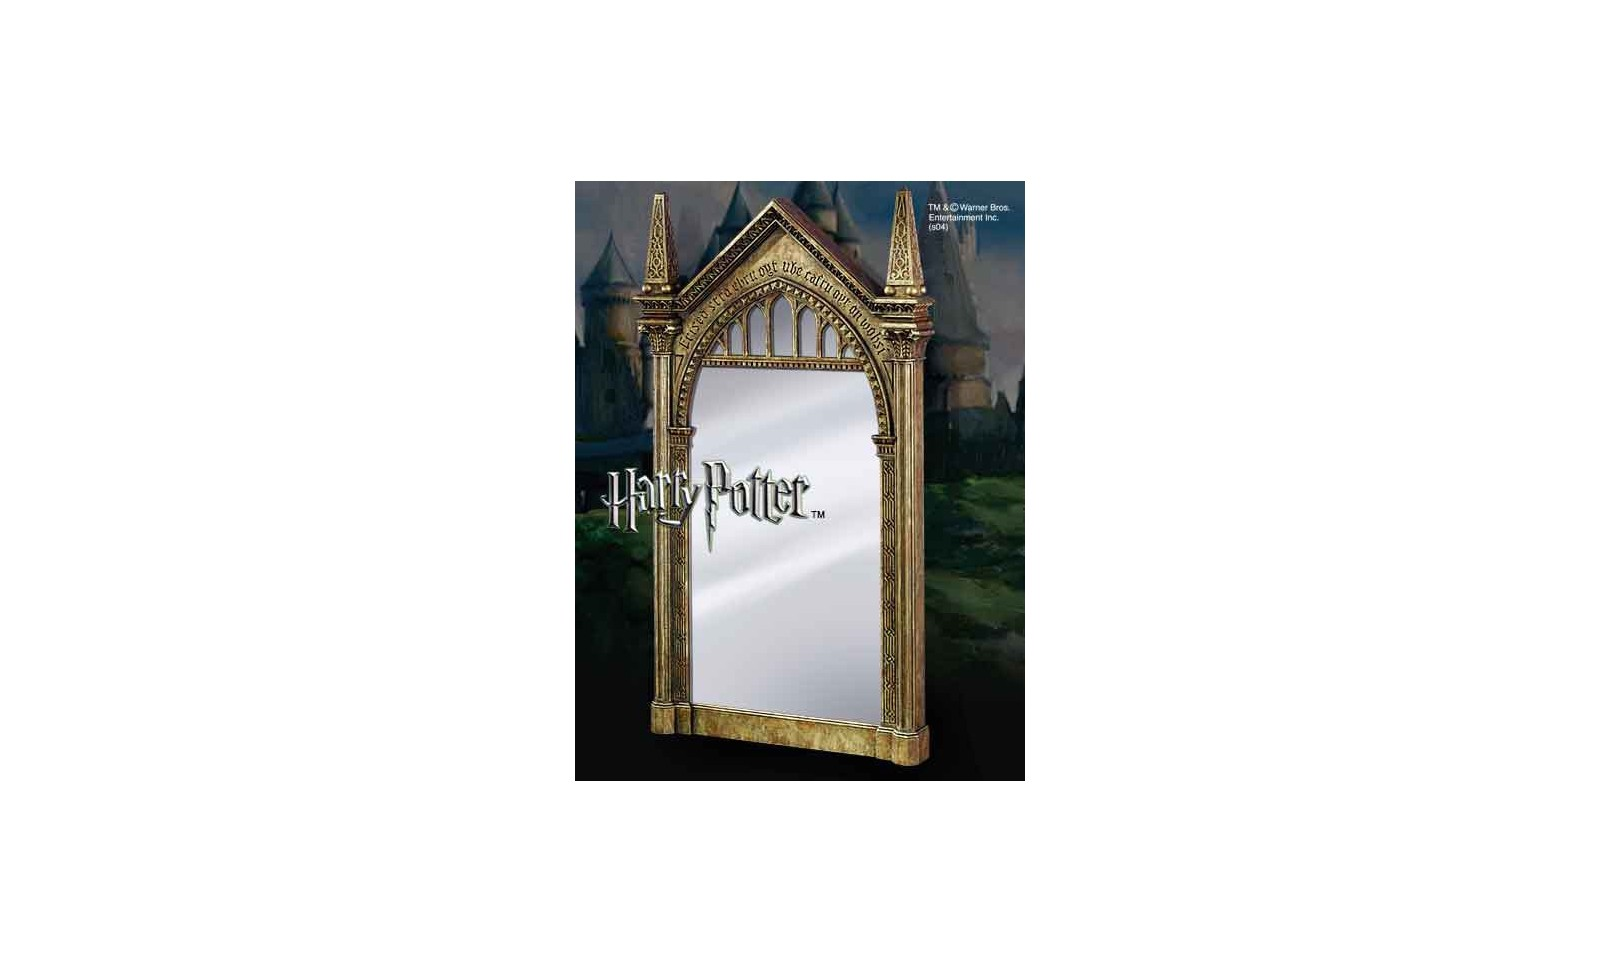 Harry potter r plique miroir du ris d 45 cm for Miroir du rised